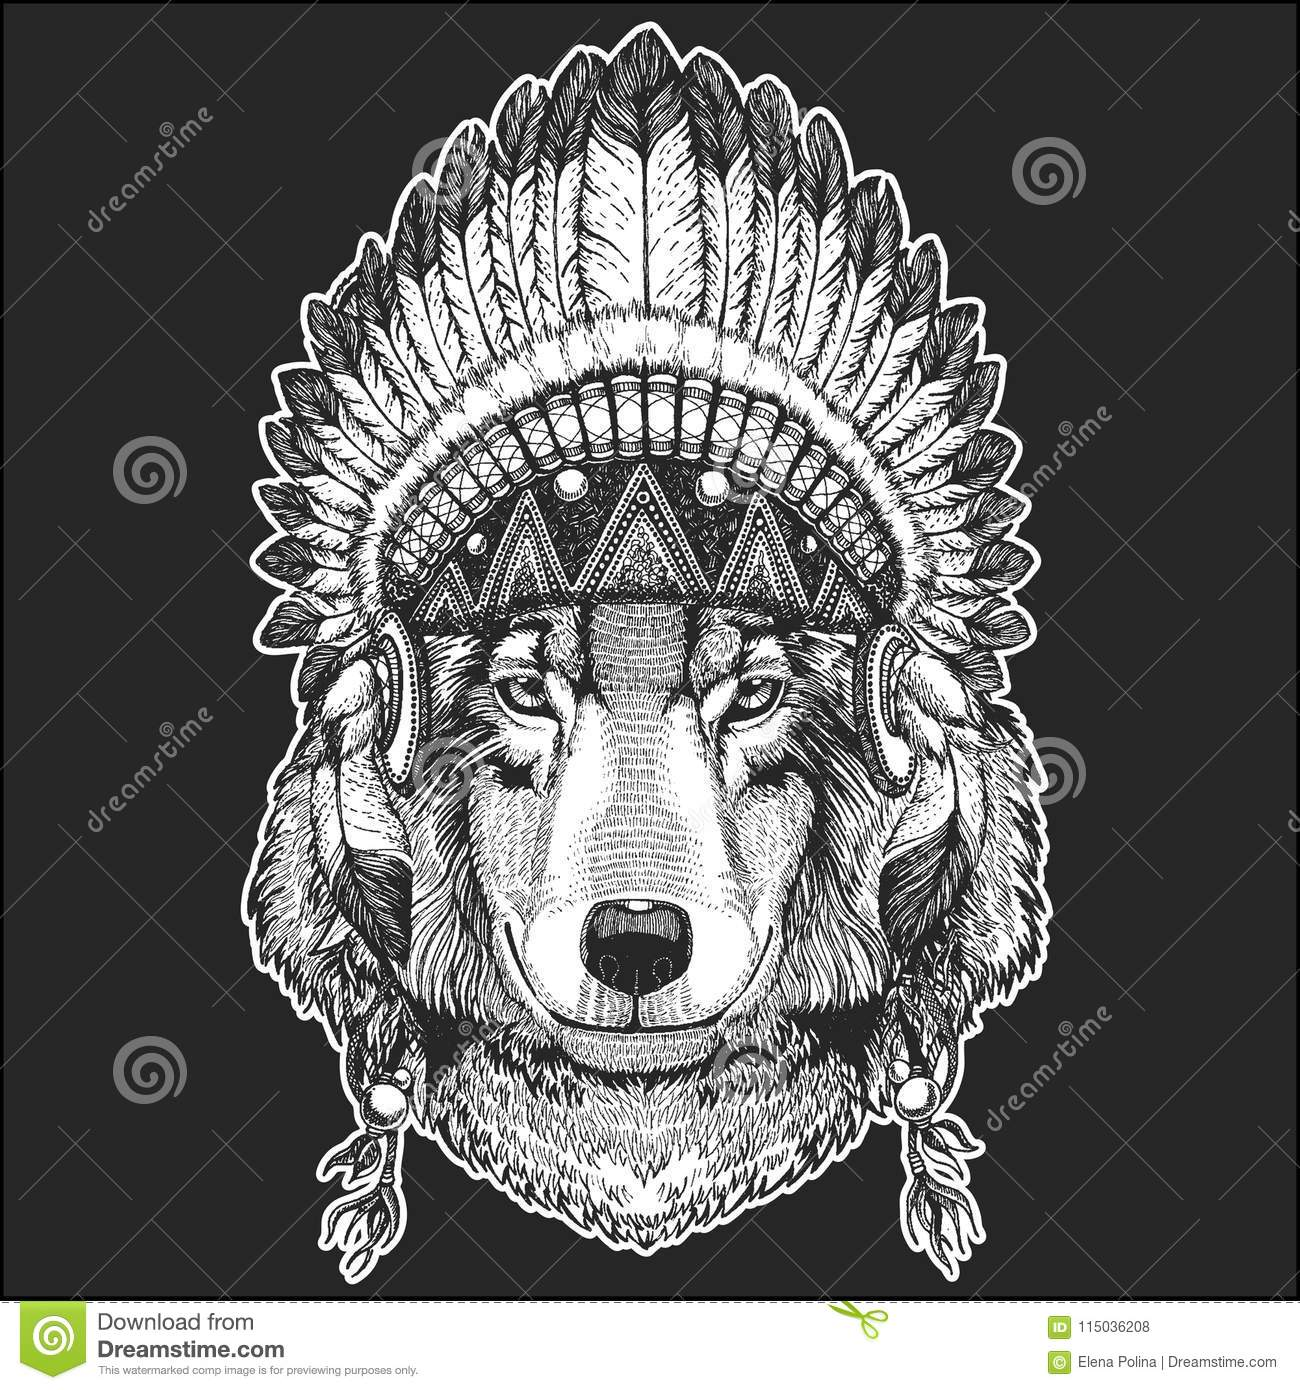 966812f31 Wolf Dog Cool animal wearing native american indian headdress with feathers  Boho chic style Hand drawn